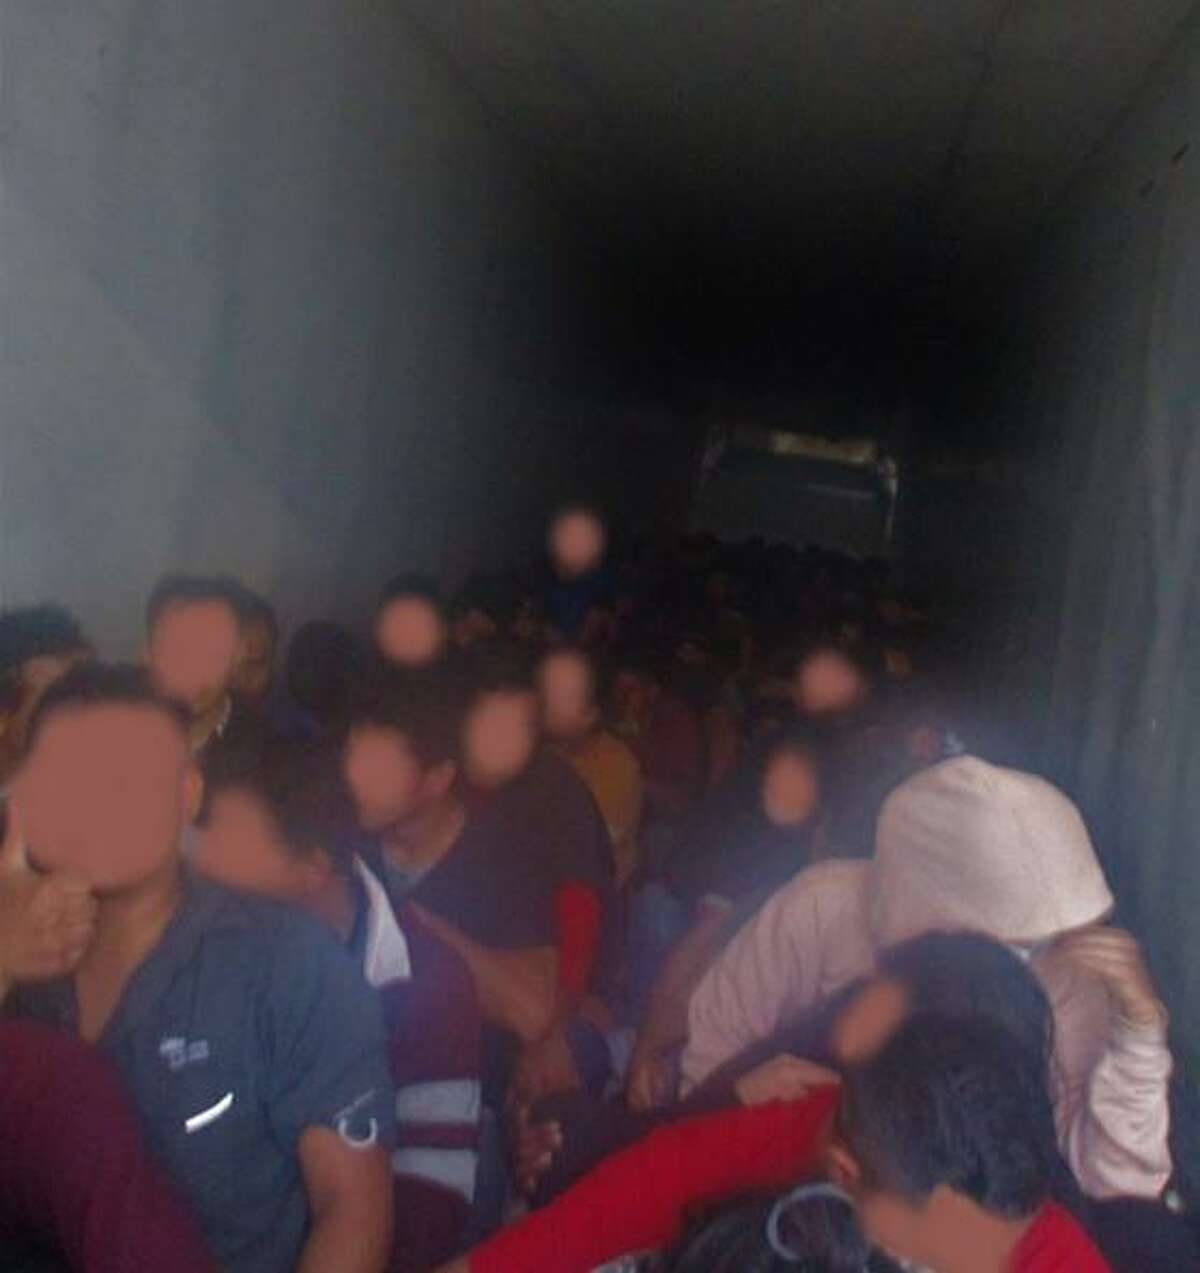 U.S. Border Patrol agents said these 103 migrants, including several juveniles, were locked inside a hot trailer. Agents said that a migrant was treated for heat exhaustion after passing out.